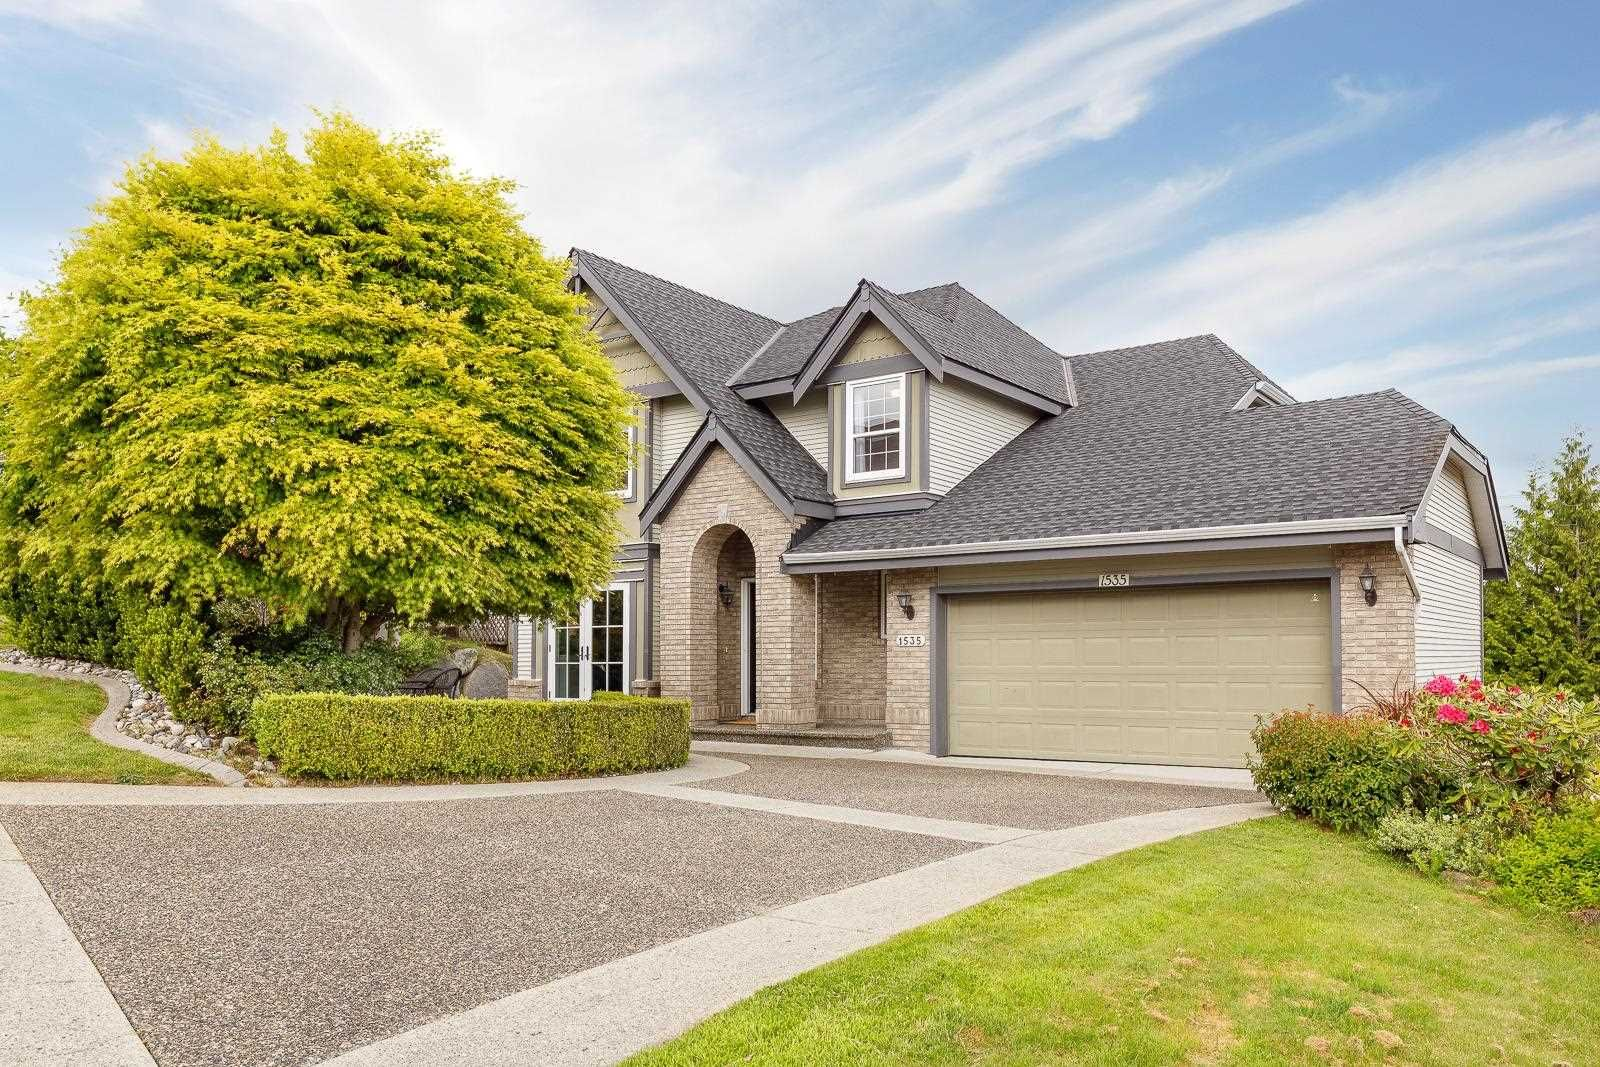 Main Photo: 1535 EAGLE MOUNTAIN Drive in Coquitlam: Westwood Plateau House for sale : MLS®# R2601785